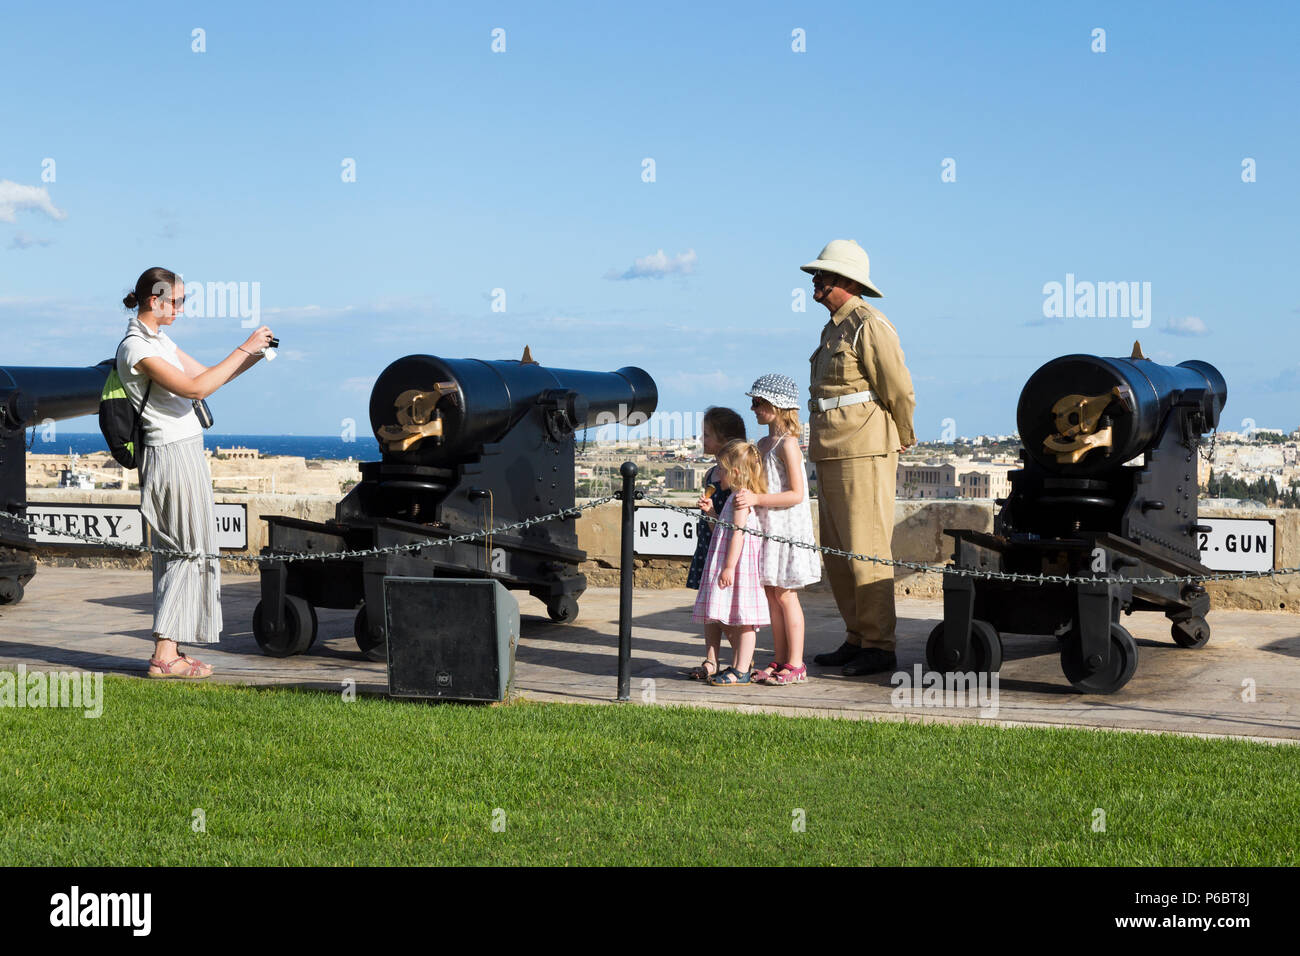 Family pose for photographs beside Number 2 Gun of the Saluting Battery as it is being prepared to fire the 4pm time signal. The Saluting Battery is an artillery battery in Valletta, Malta. - Stock Image